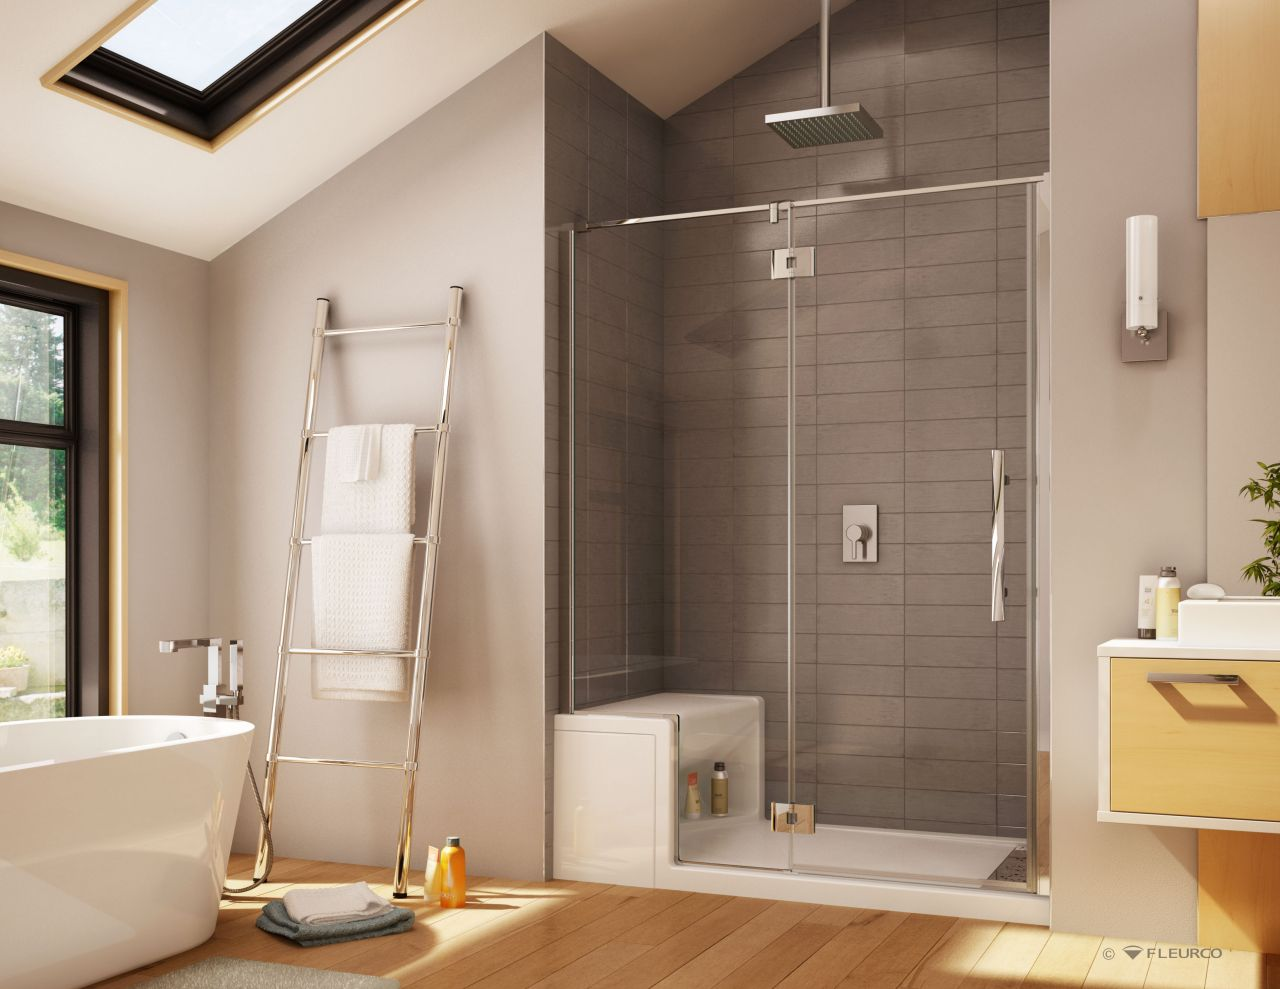 Superb Alessa 60 X 36 Acrylic Shower Base With Platinum Series Glass Enclosure    One Wall System